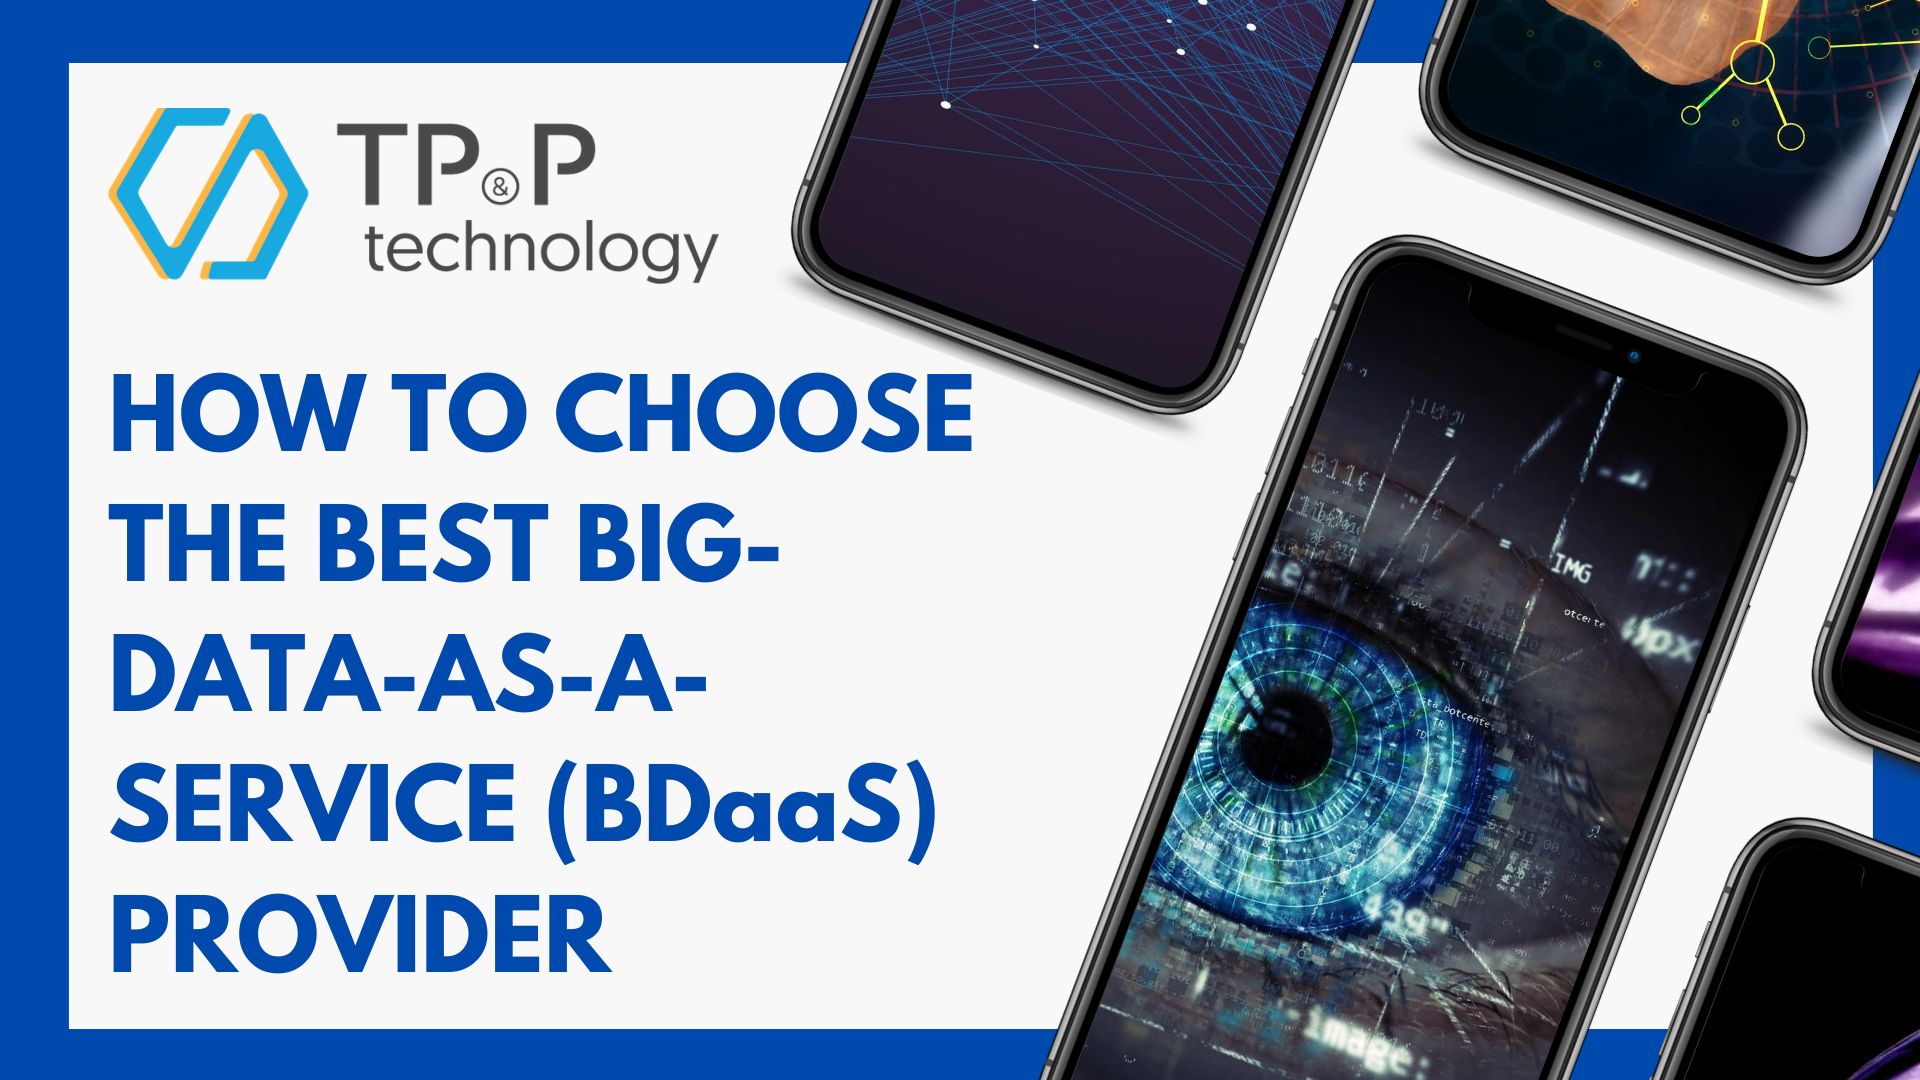 How To Choose the Right Big Data-As-A-Service (BDaaS) Provider?